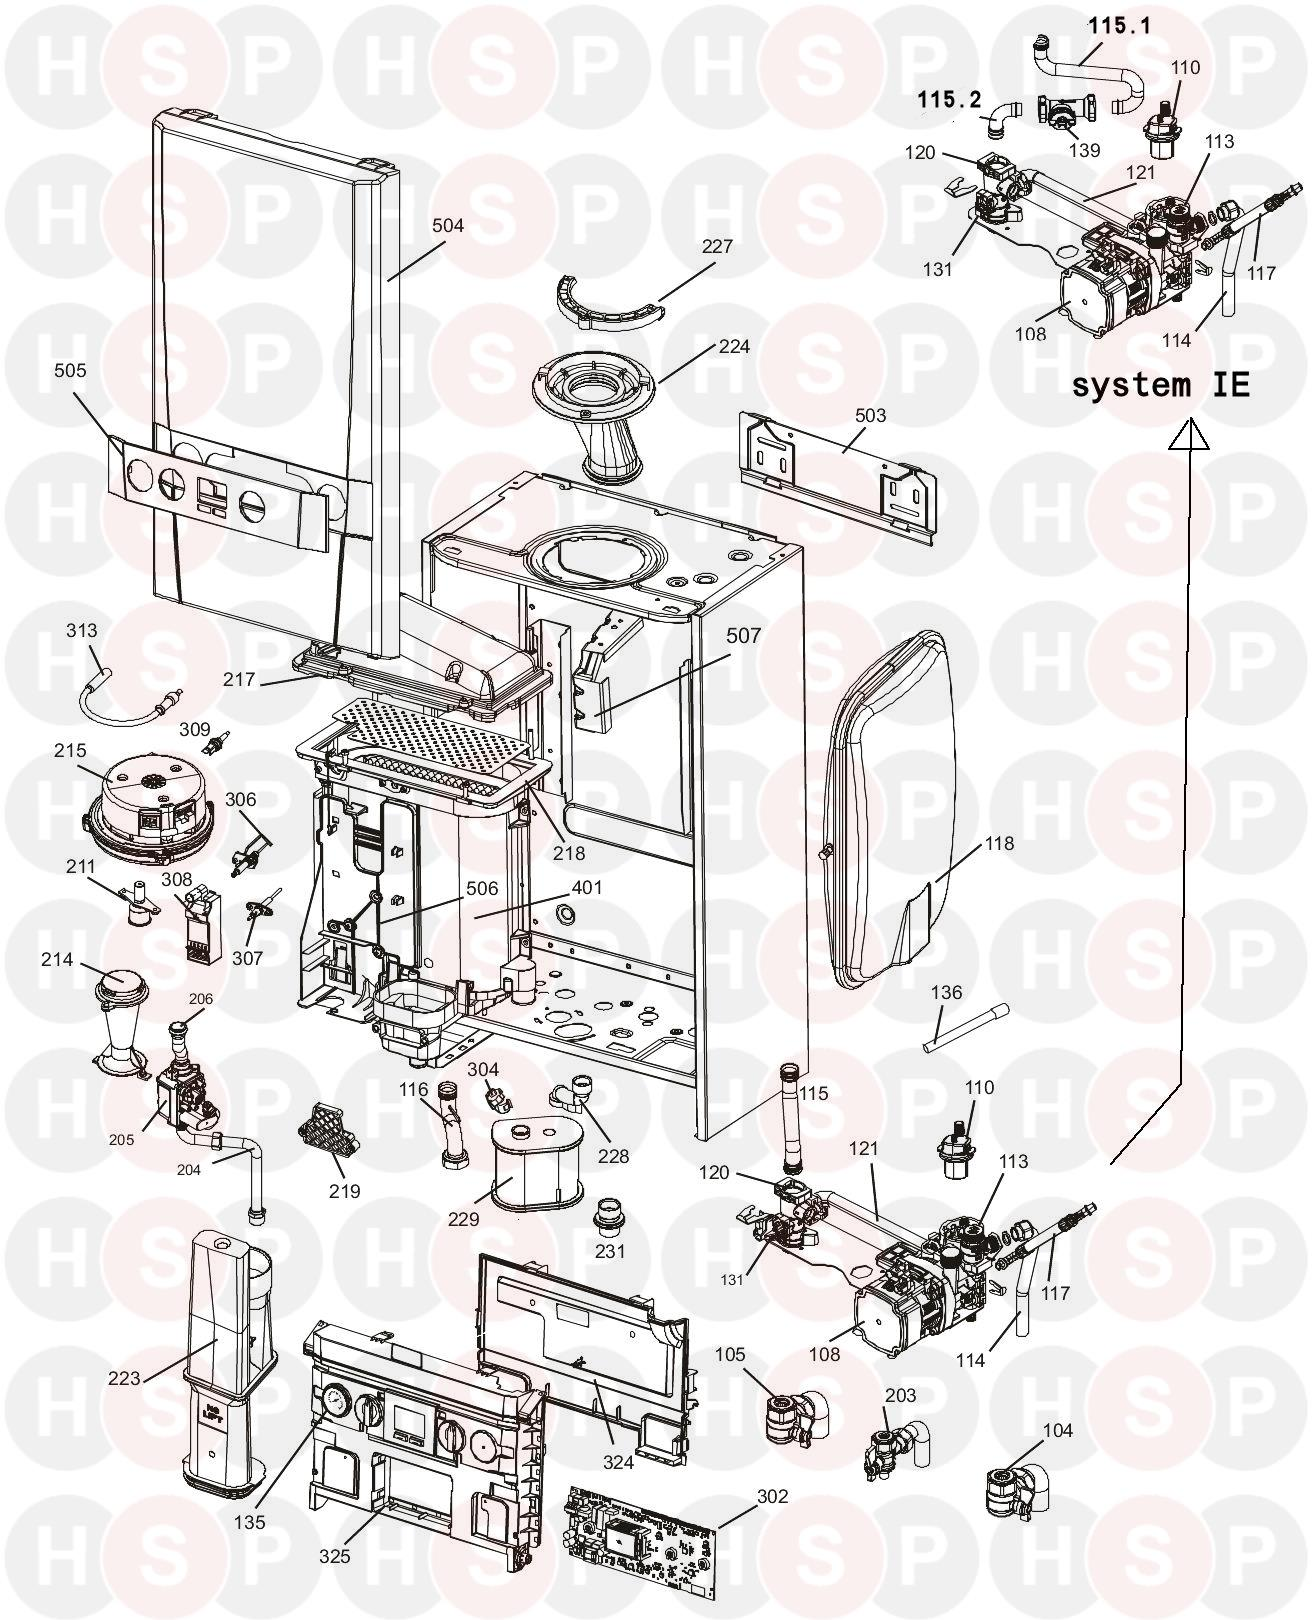 Ideal System S 18  Exploded View Diagram